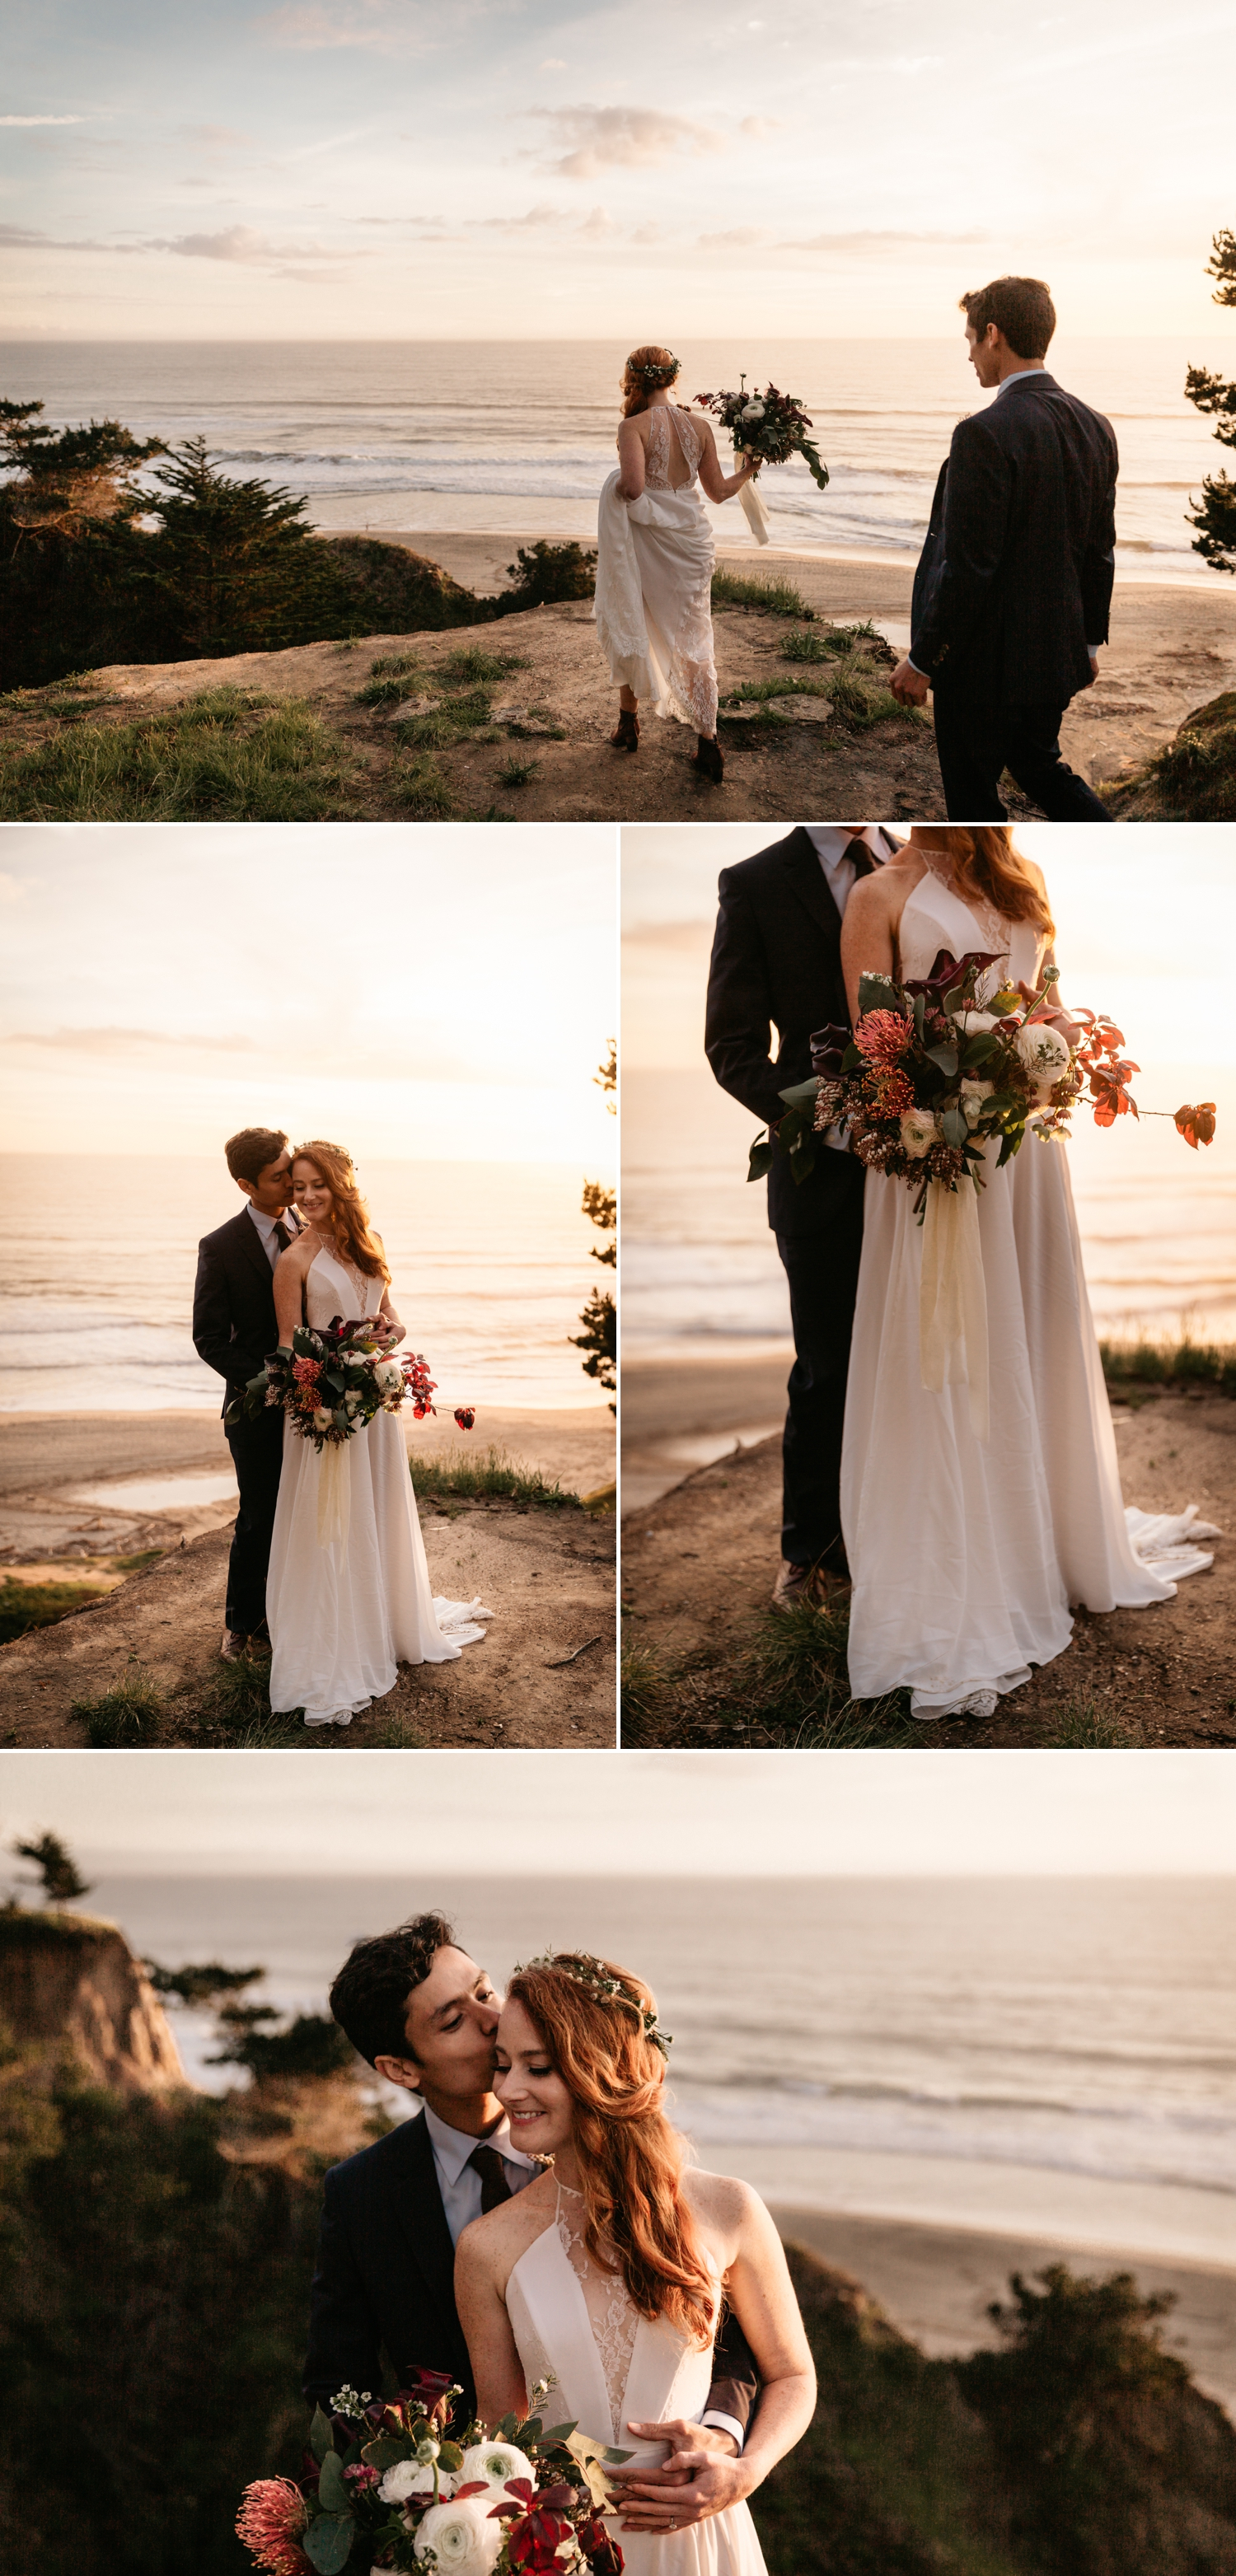 Sunset wedding pictures at beach by Paige Nelson